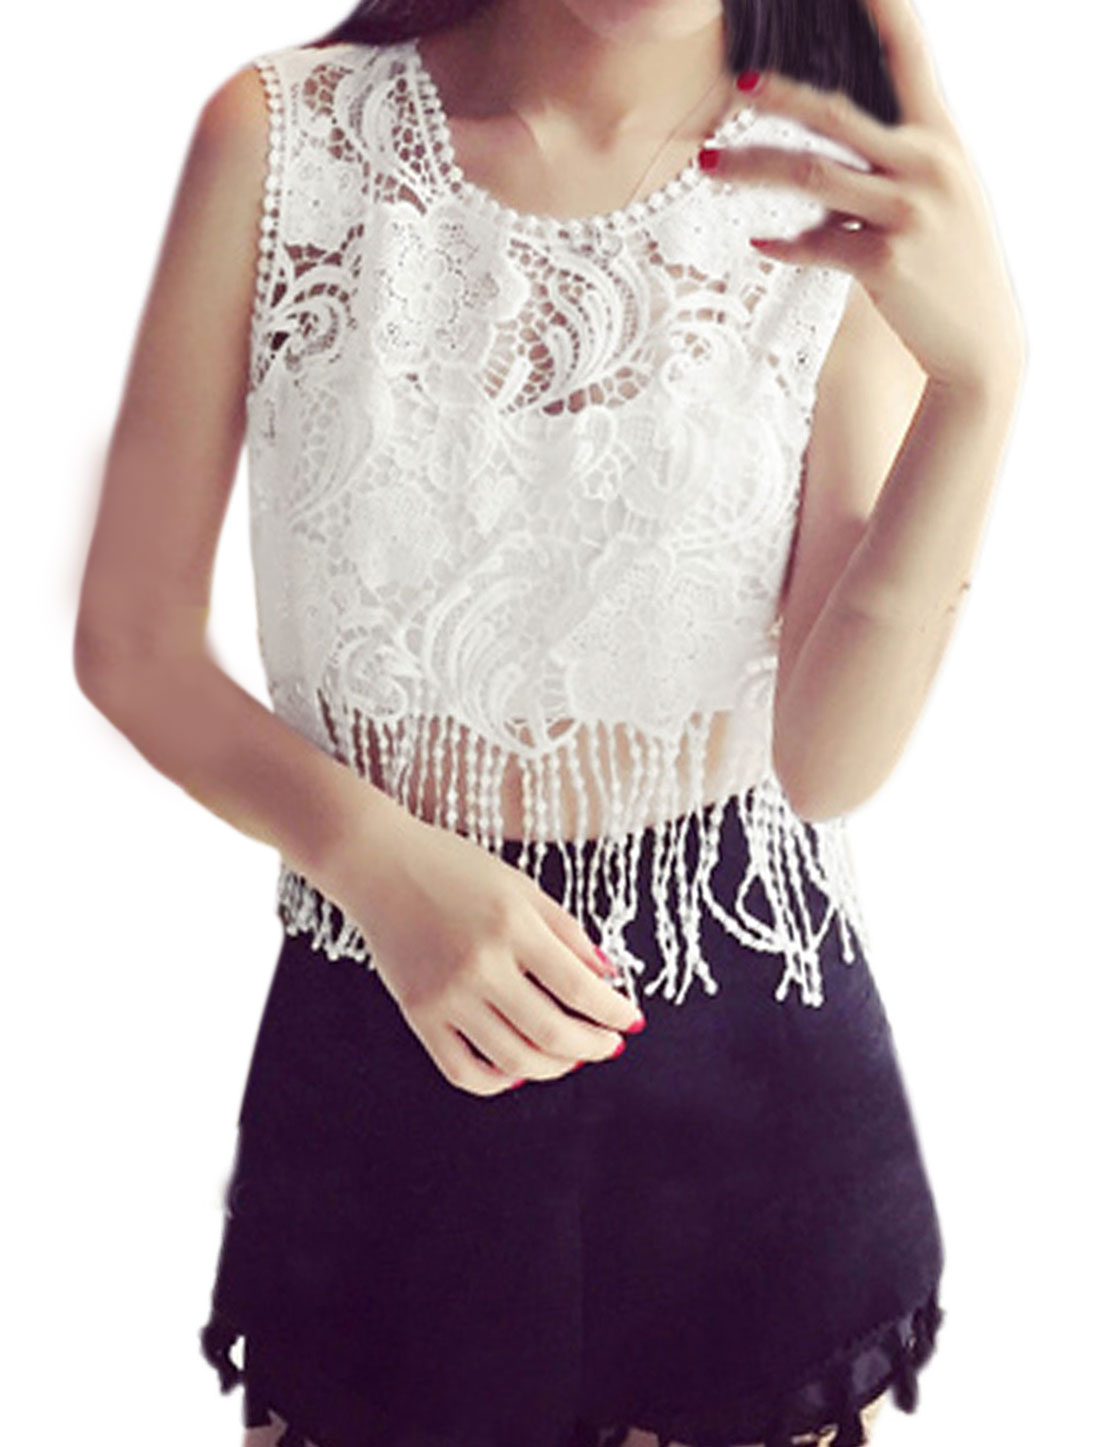 Woman Floral Design Hollow Out Sleeveless Fringed Lace Crop Top White XS